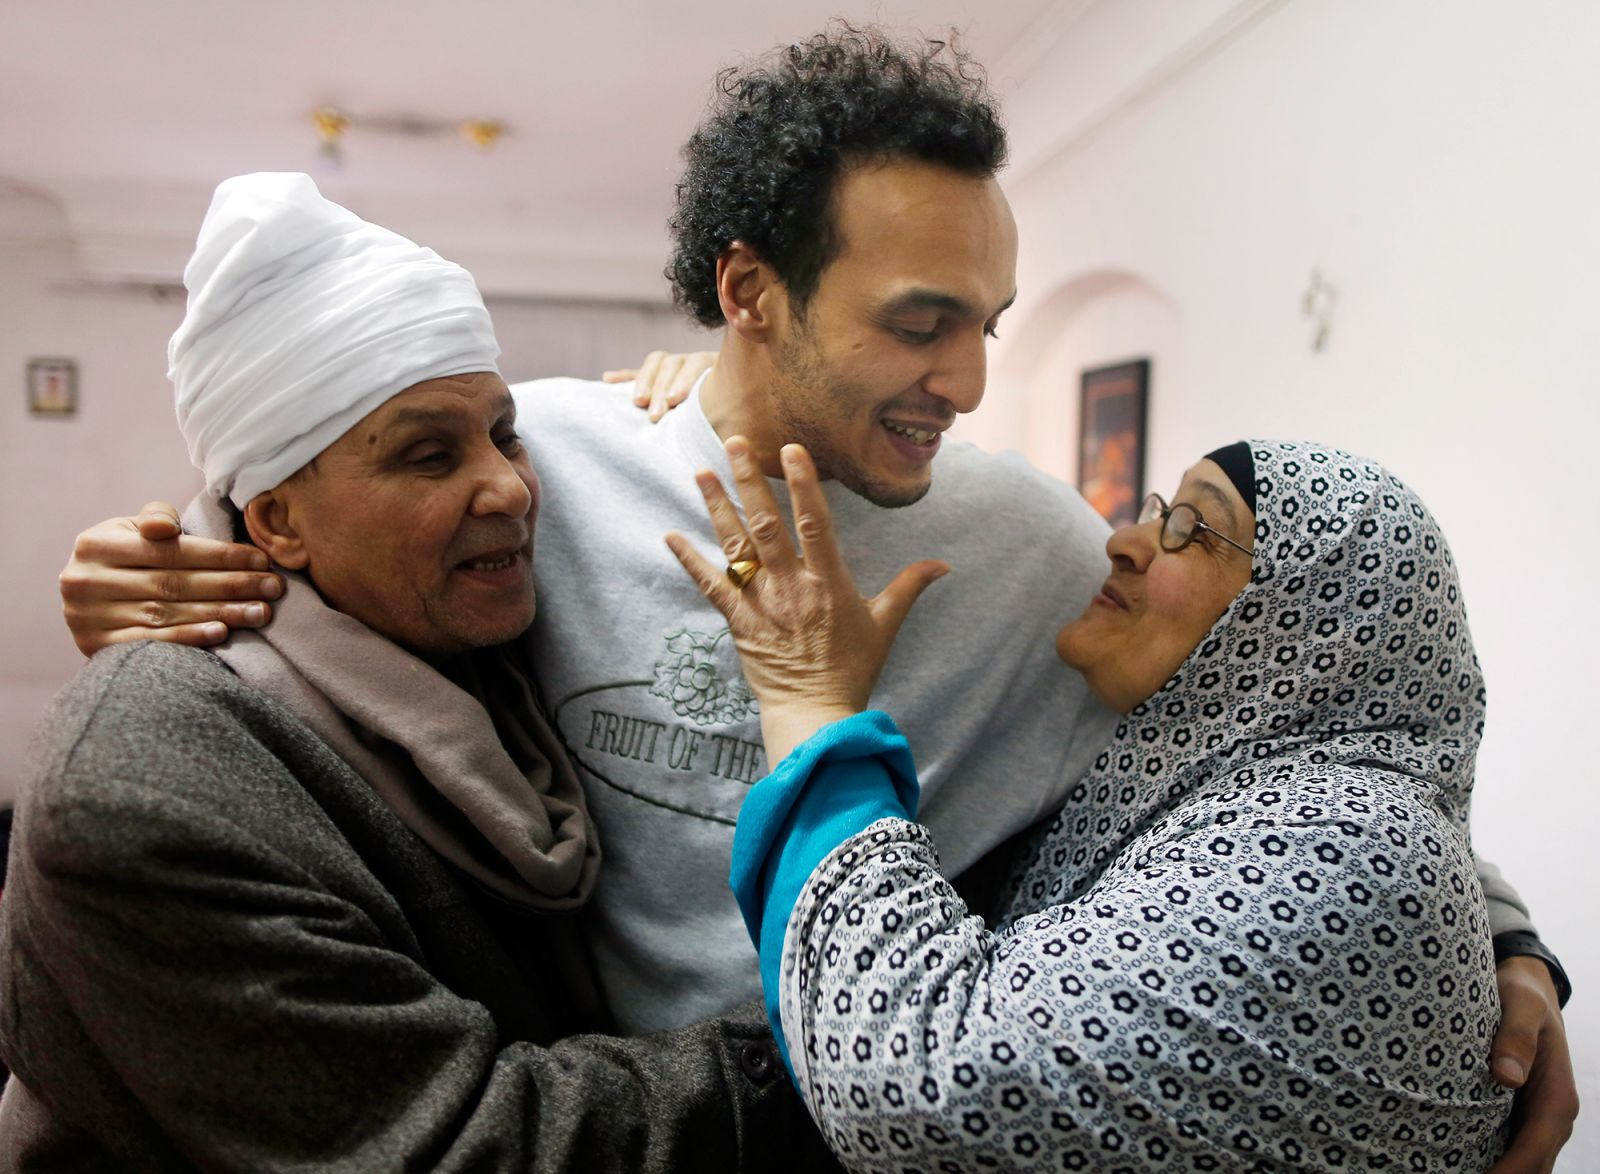 This Egyptian photojournalist was released from prison. See some of his best work